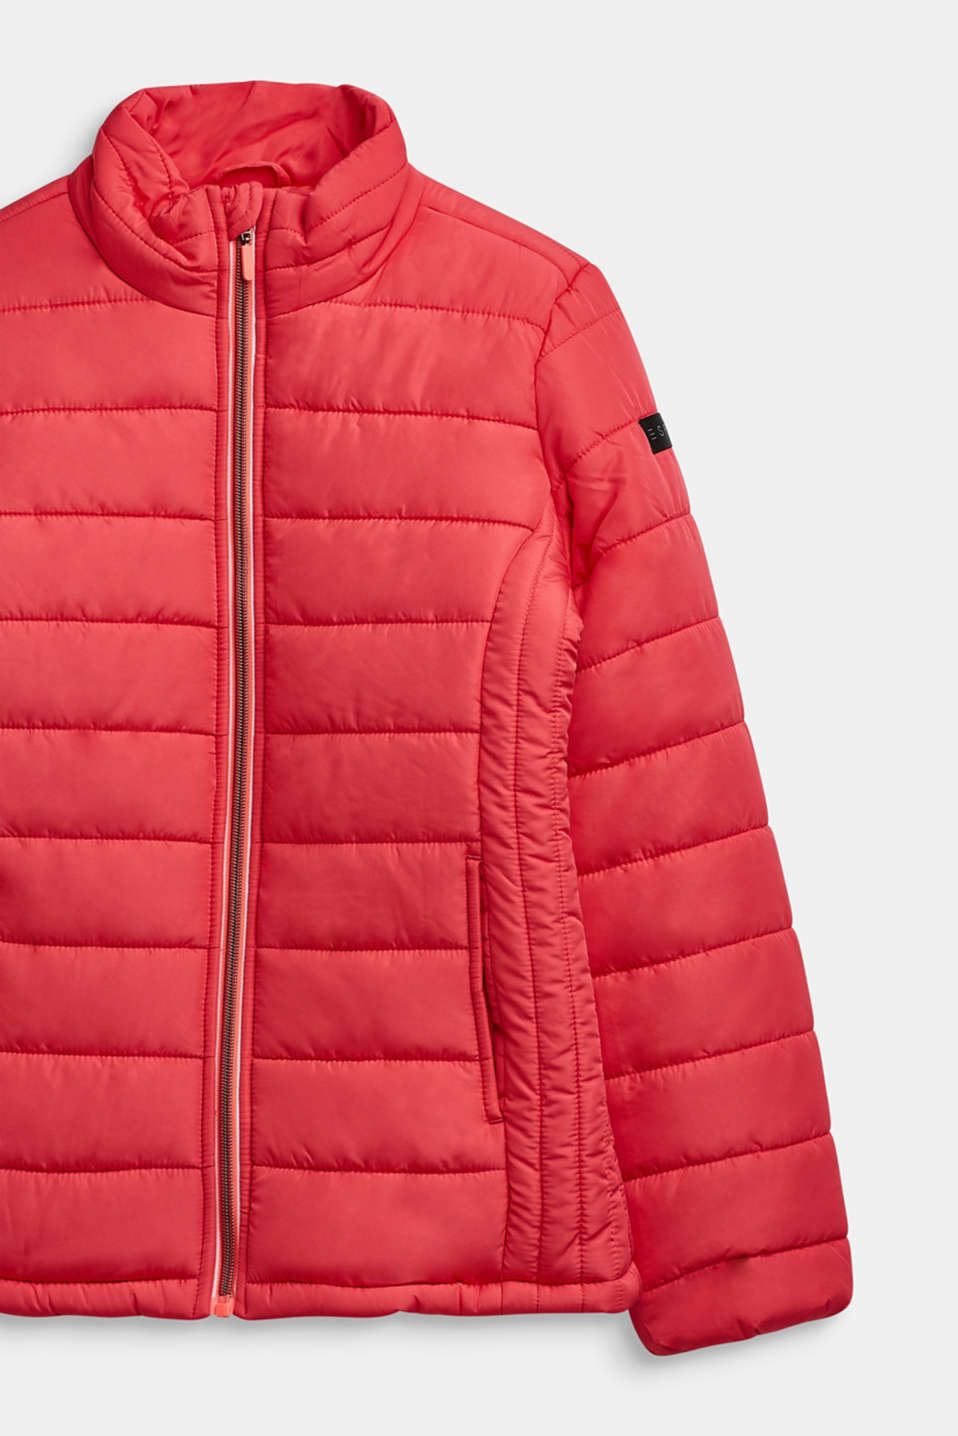 Quilted jacket with a stand-up collar, LCSTRAWBERRY, detail image number 2